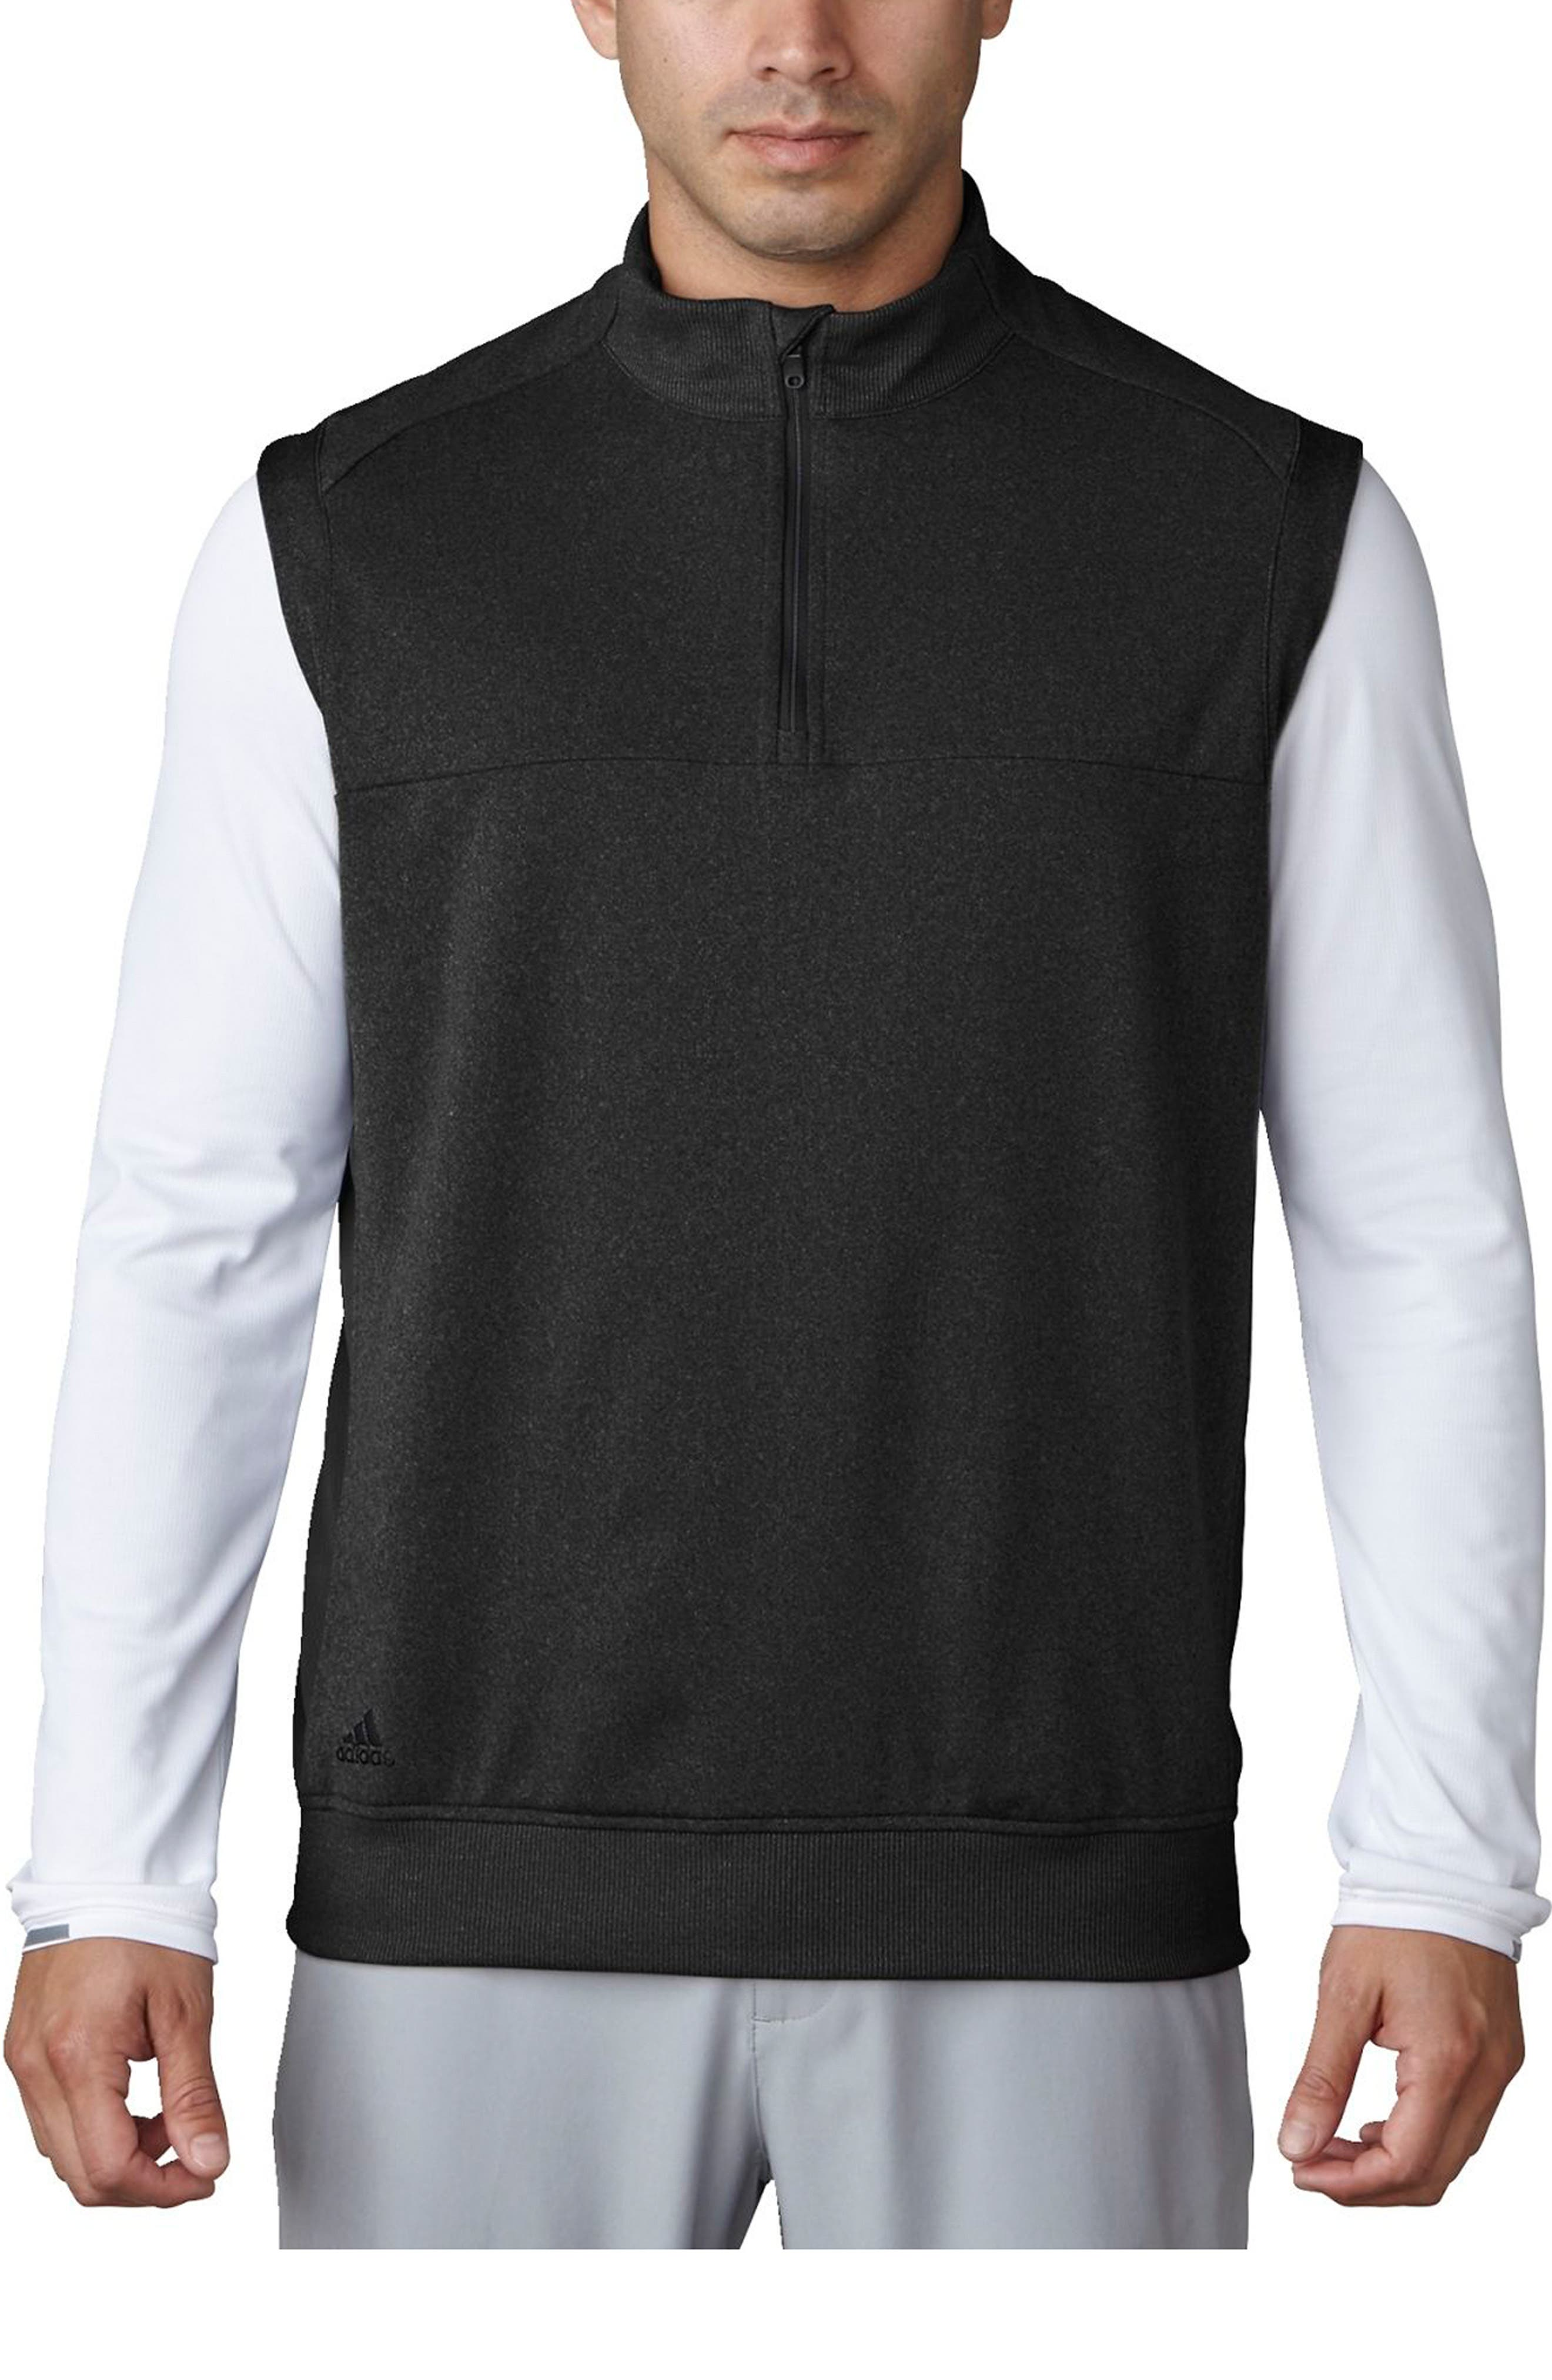 Club Quarter Zip Pullover Vest,                             Main thumbnail 1, color,                             015